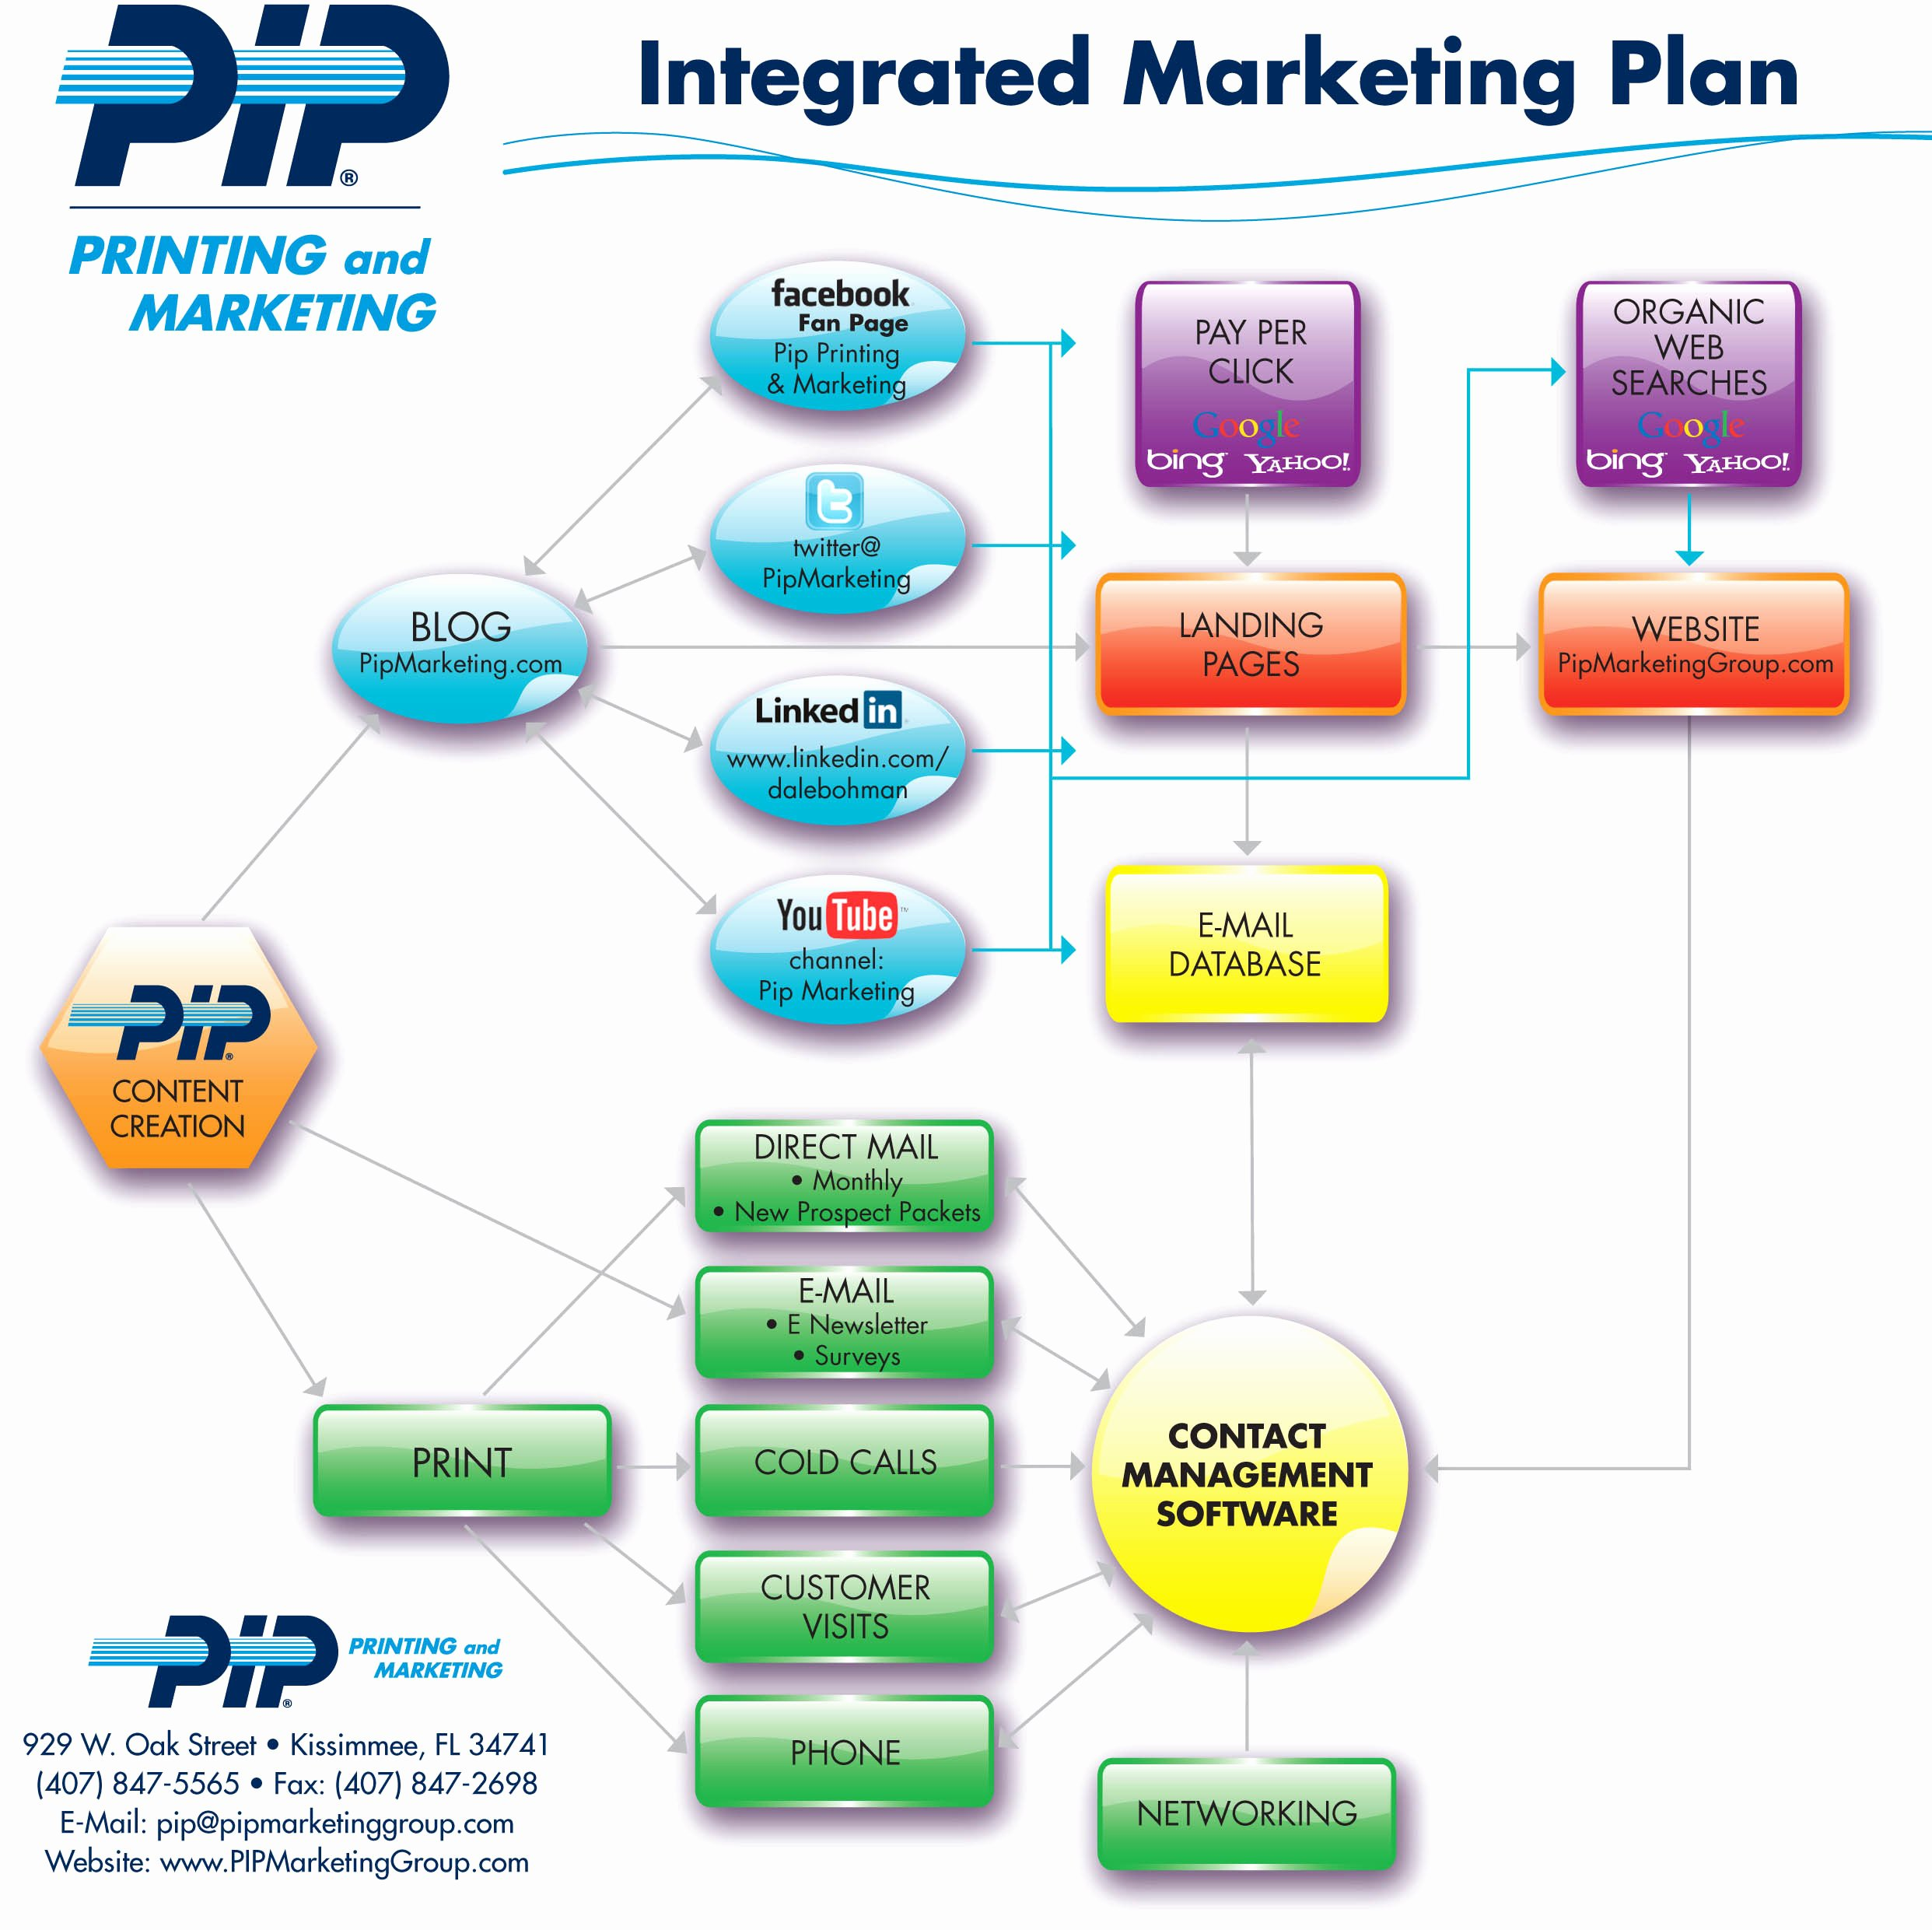 Integrated Marketing Plan Template Unique Integrated Marketing Plan